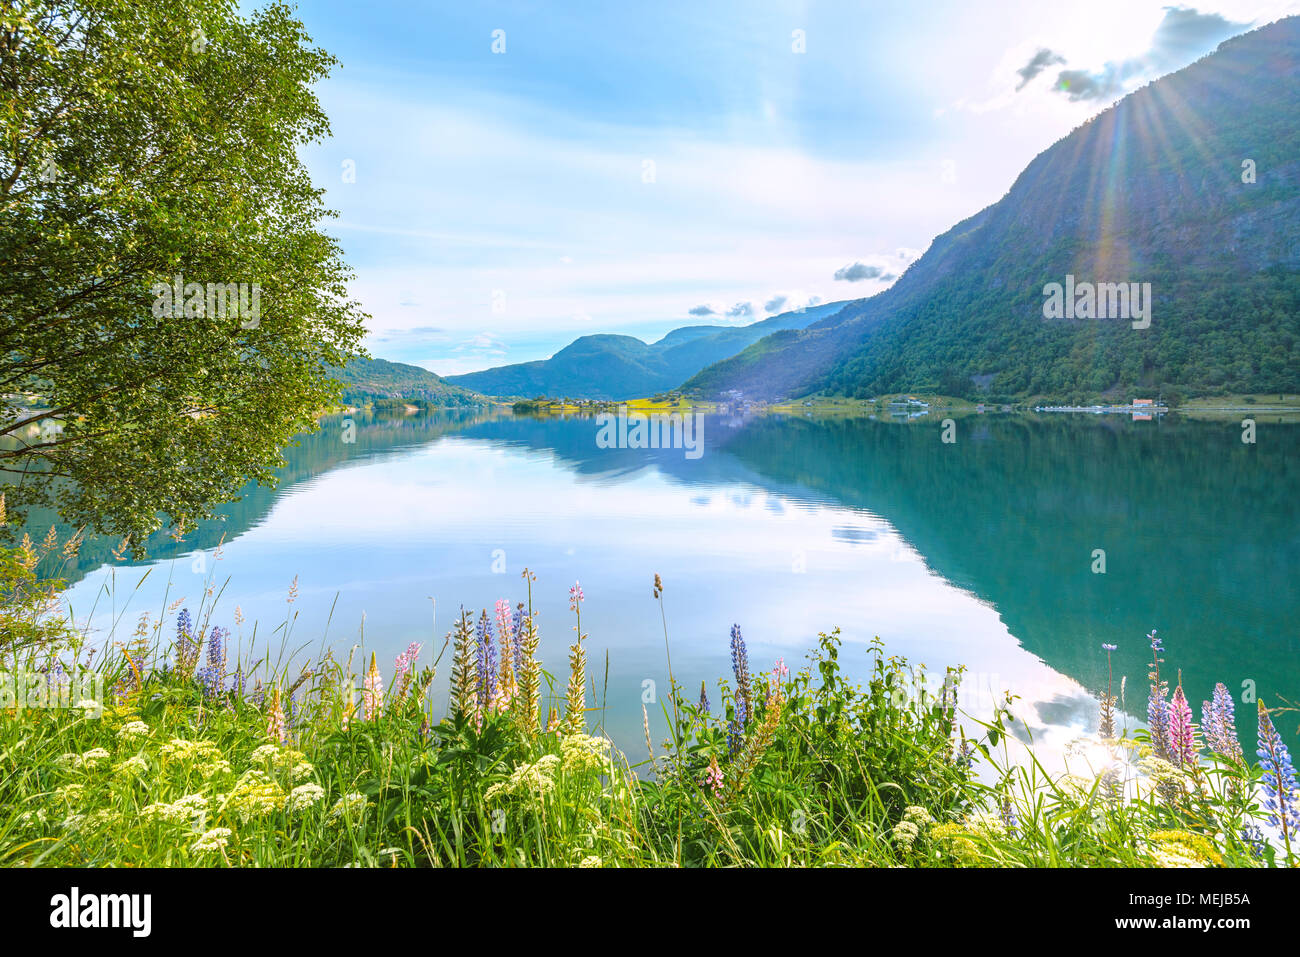 Barsnesfjorden with colourful lupins, Norway, fjord landscape with blooming flowers illuminated by the rising sun, side arm of the Sognefjorden - Stock Image